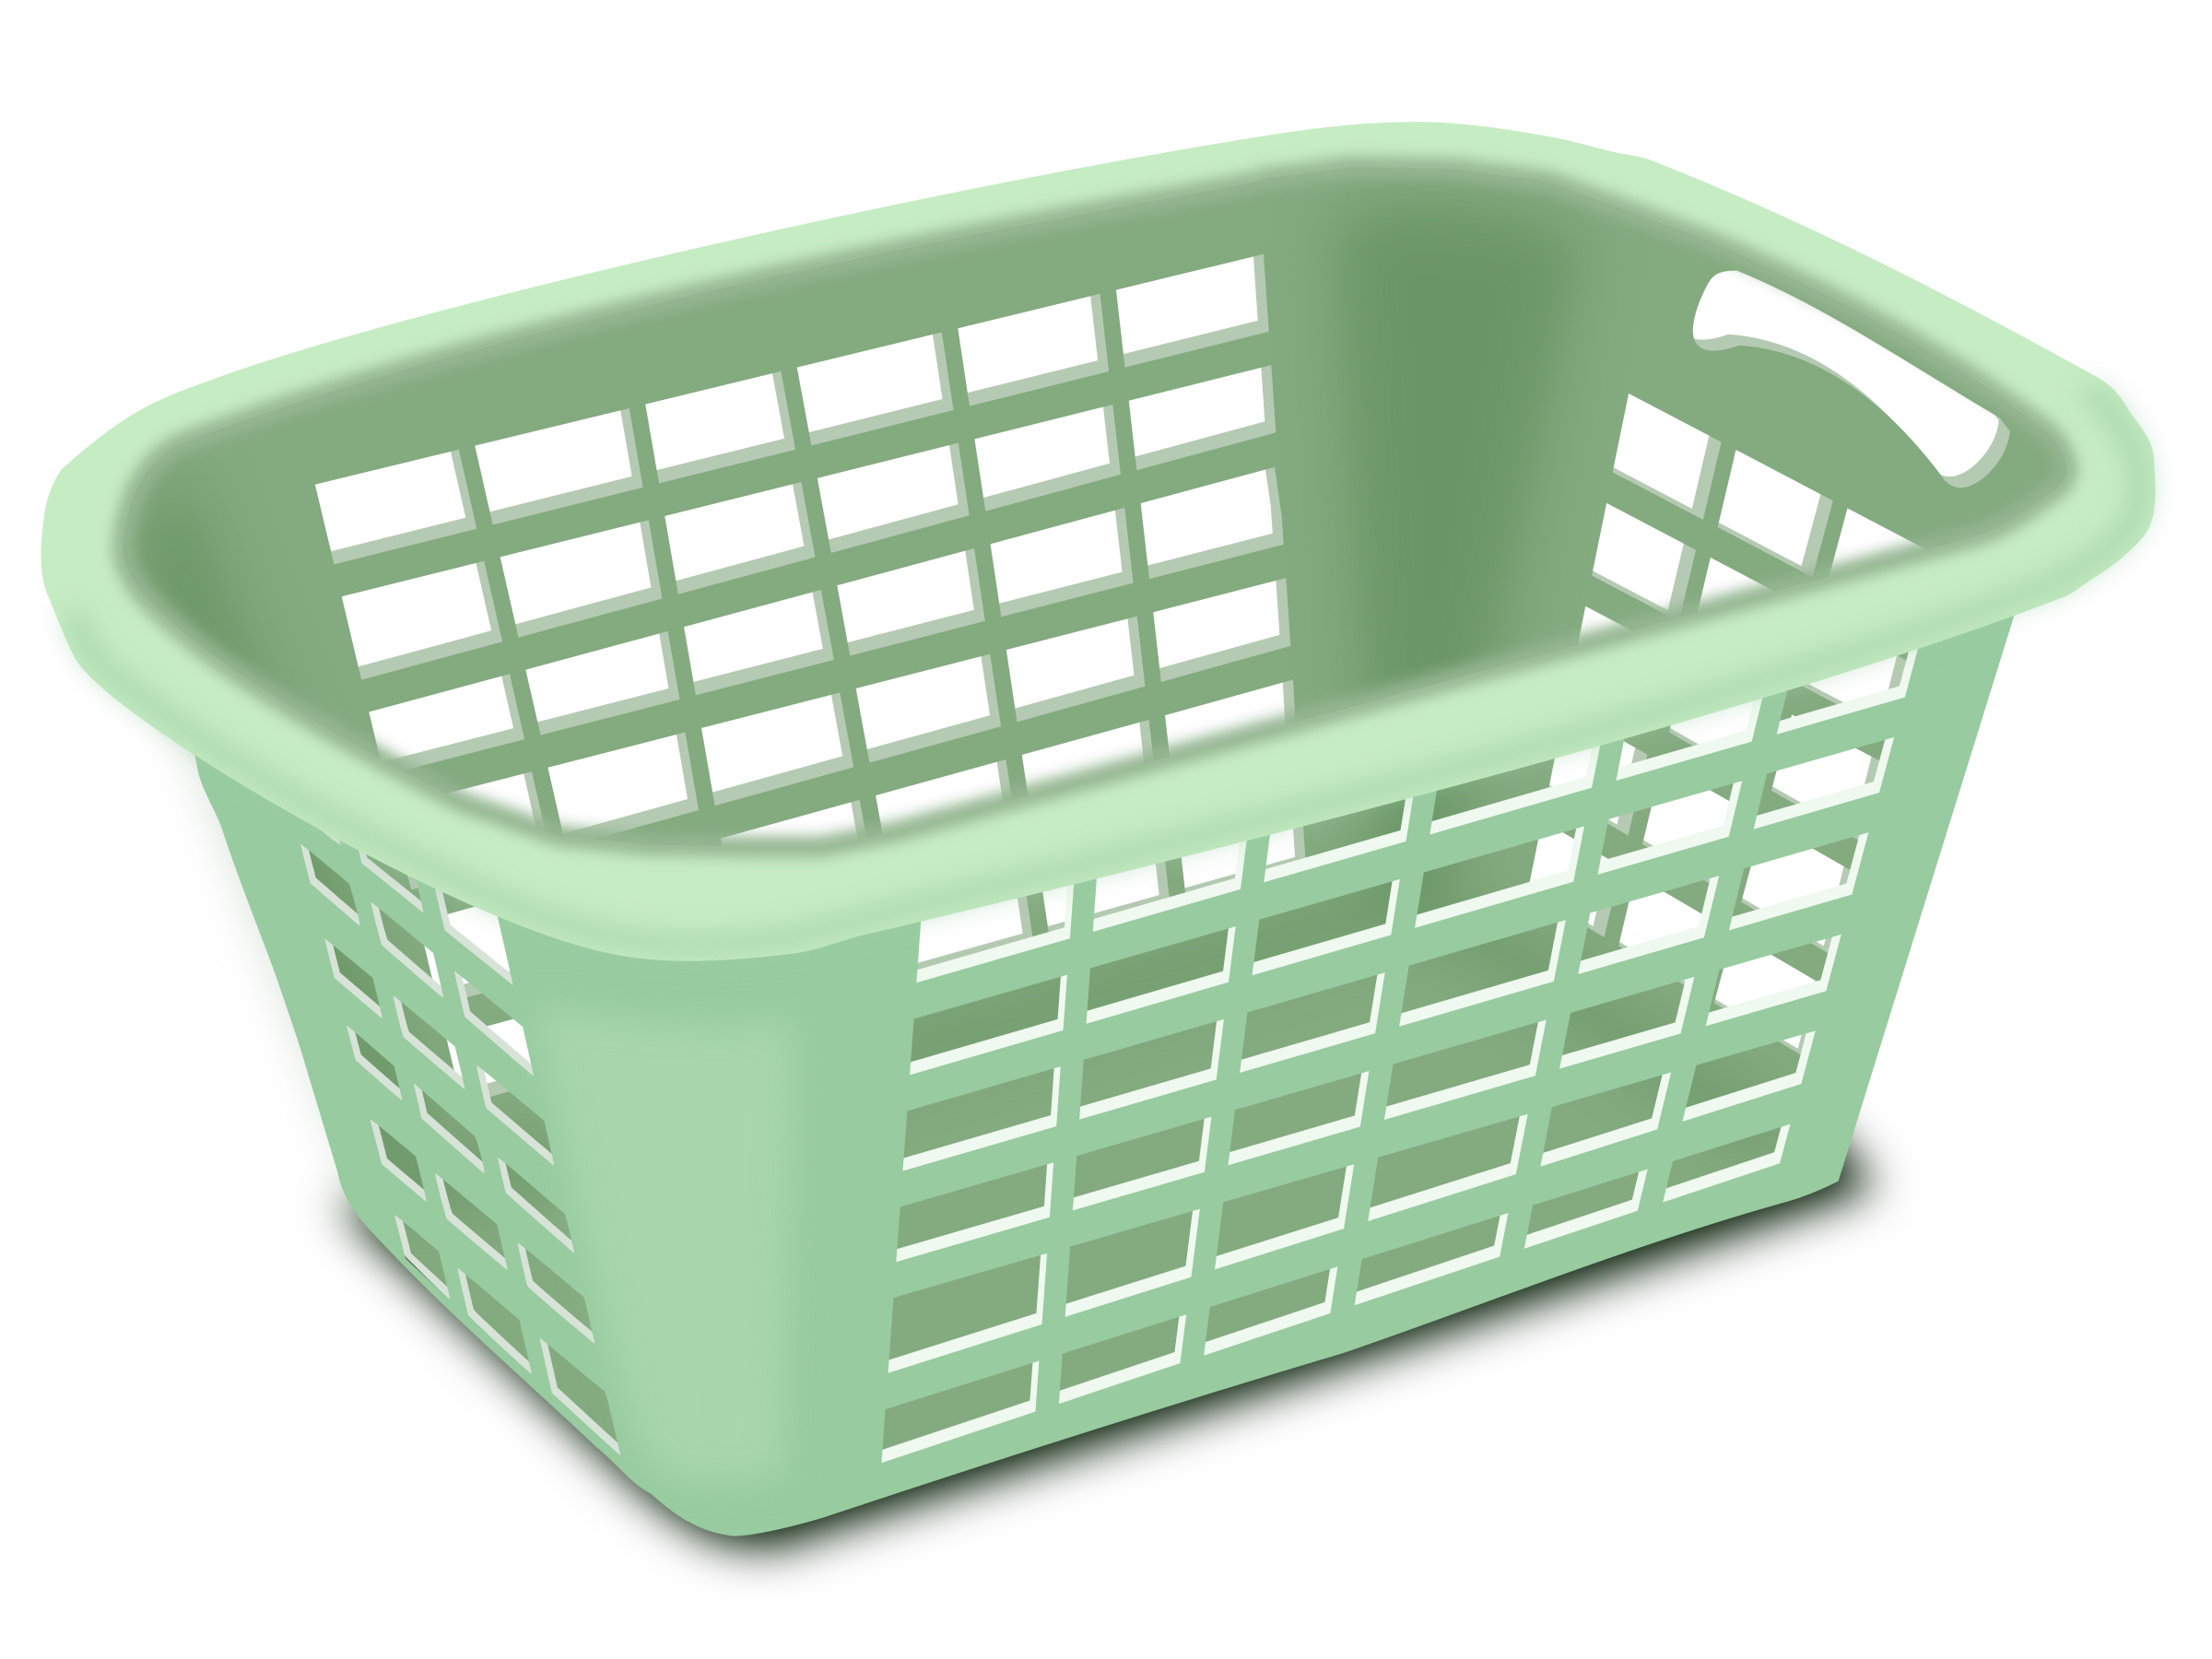 Washing clothes png. Clipart plastic laundry basket